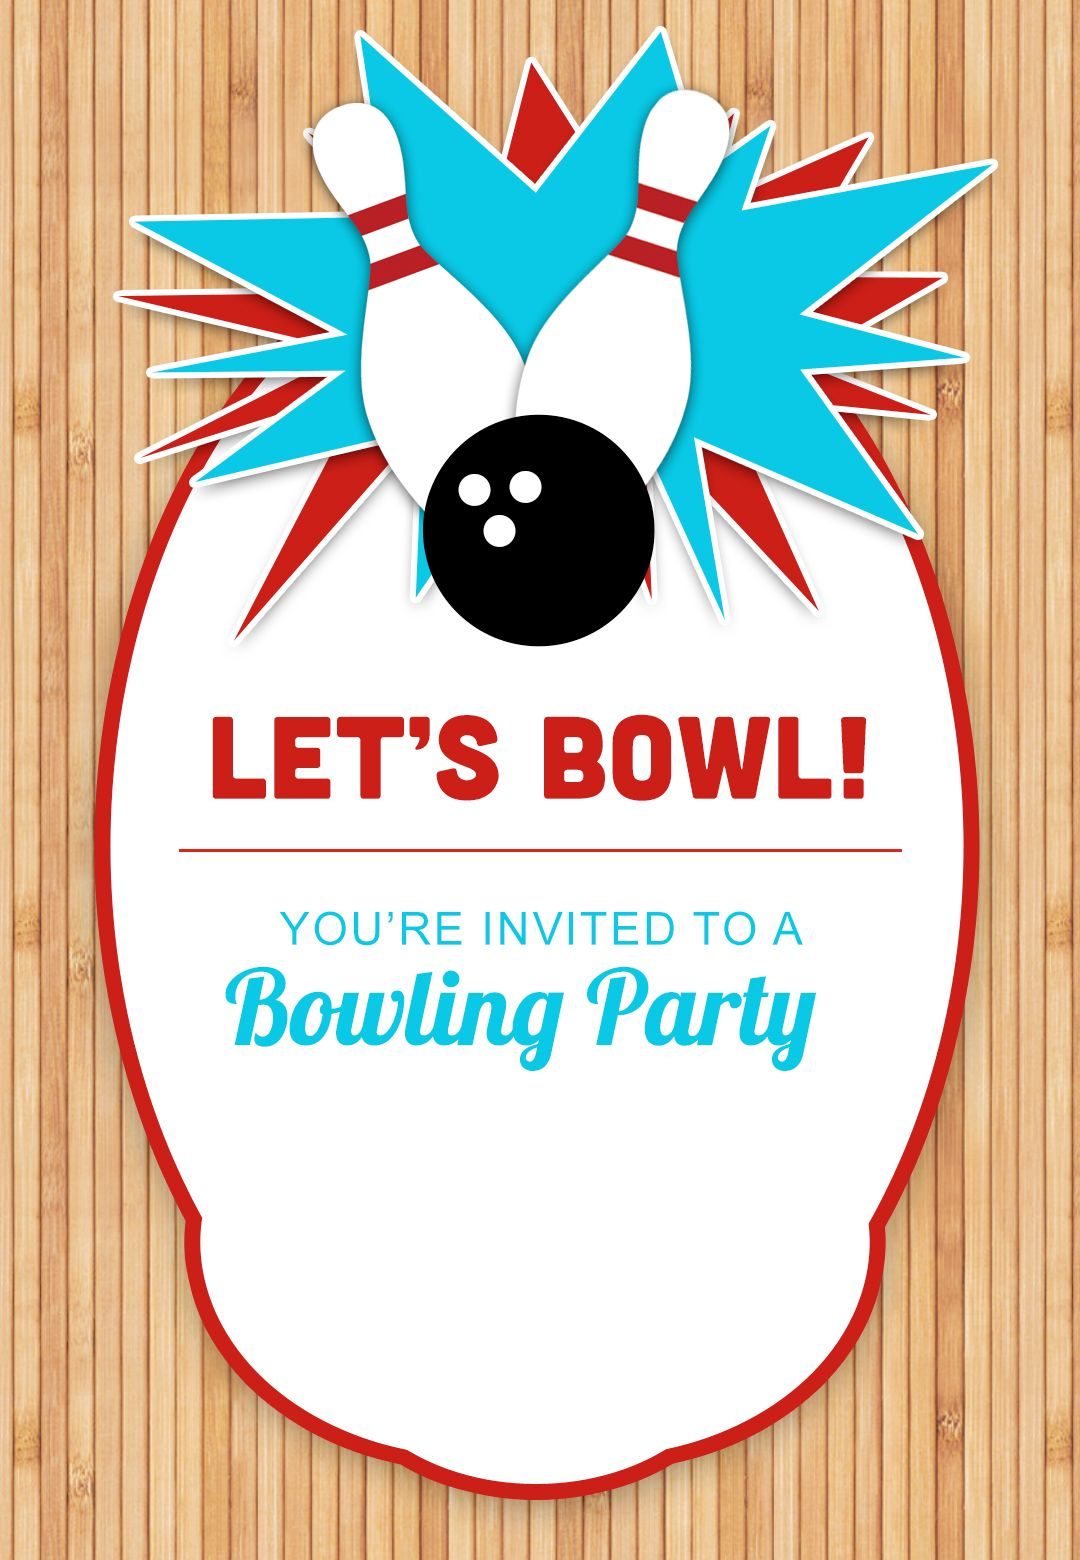 Bowling Party - Free Printable Birthday Invitation Template - Free Printable Bowling Invitation Templates